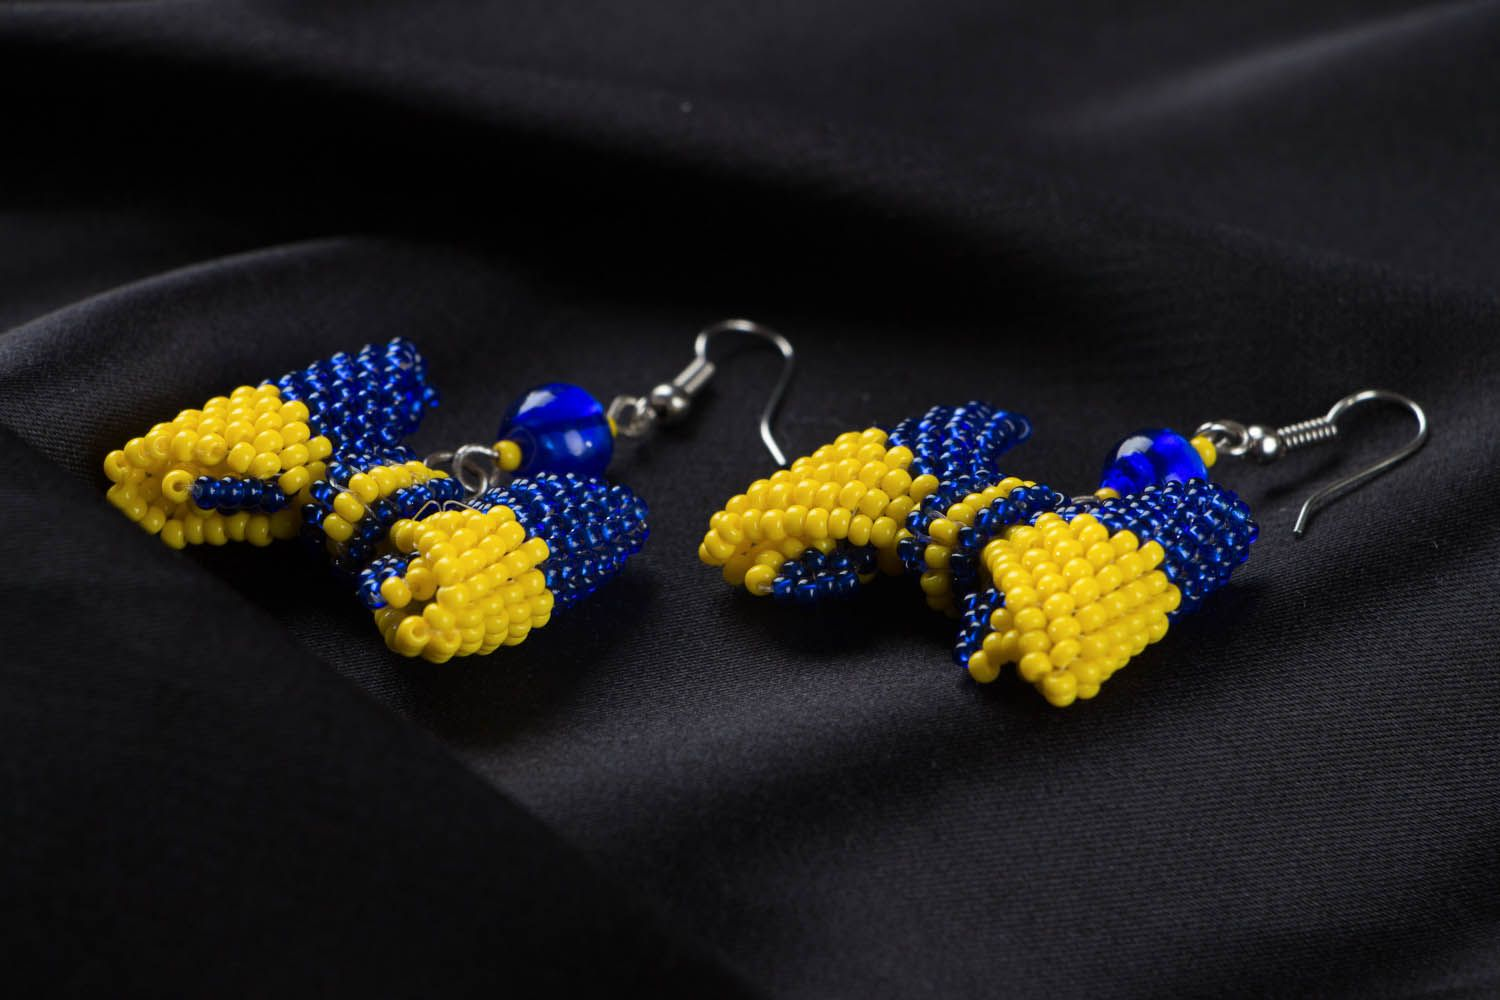 Homemade beaded earrings photo 2